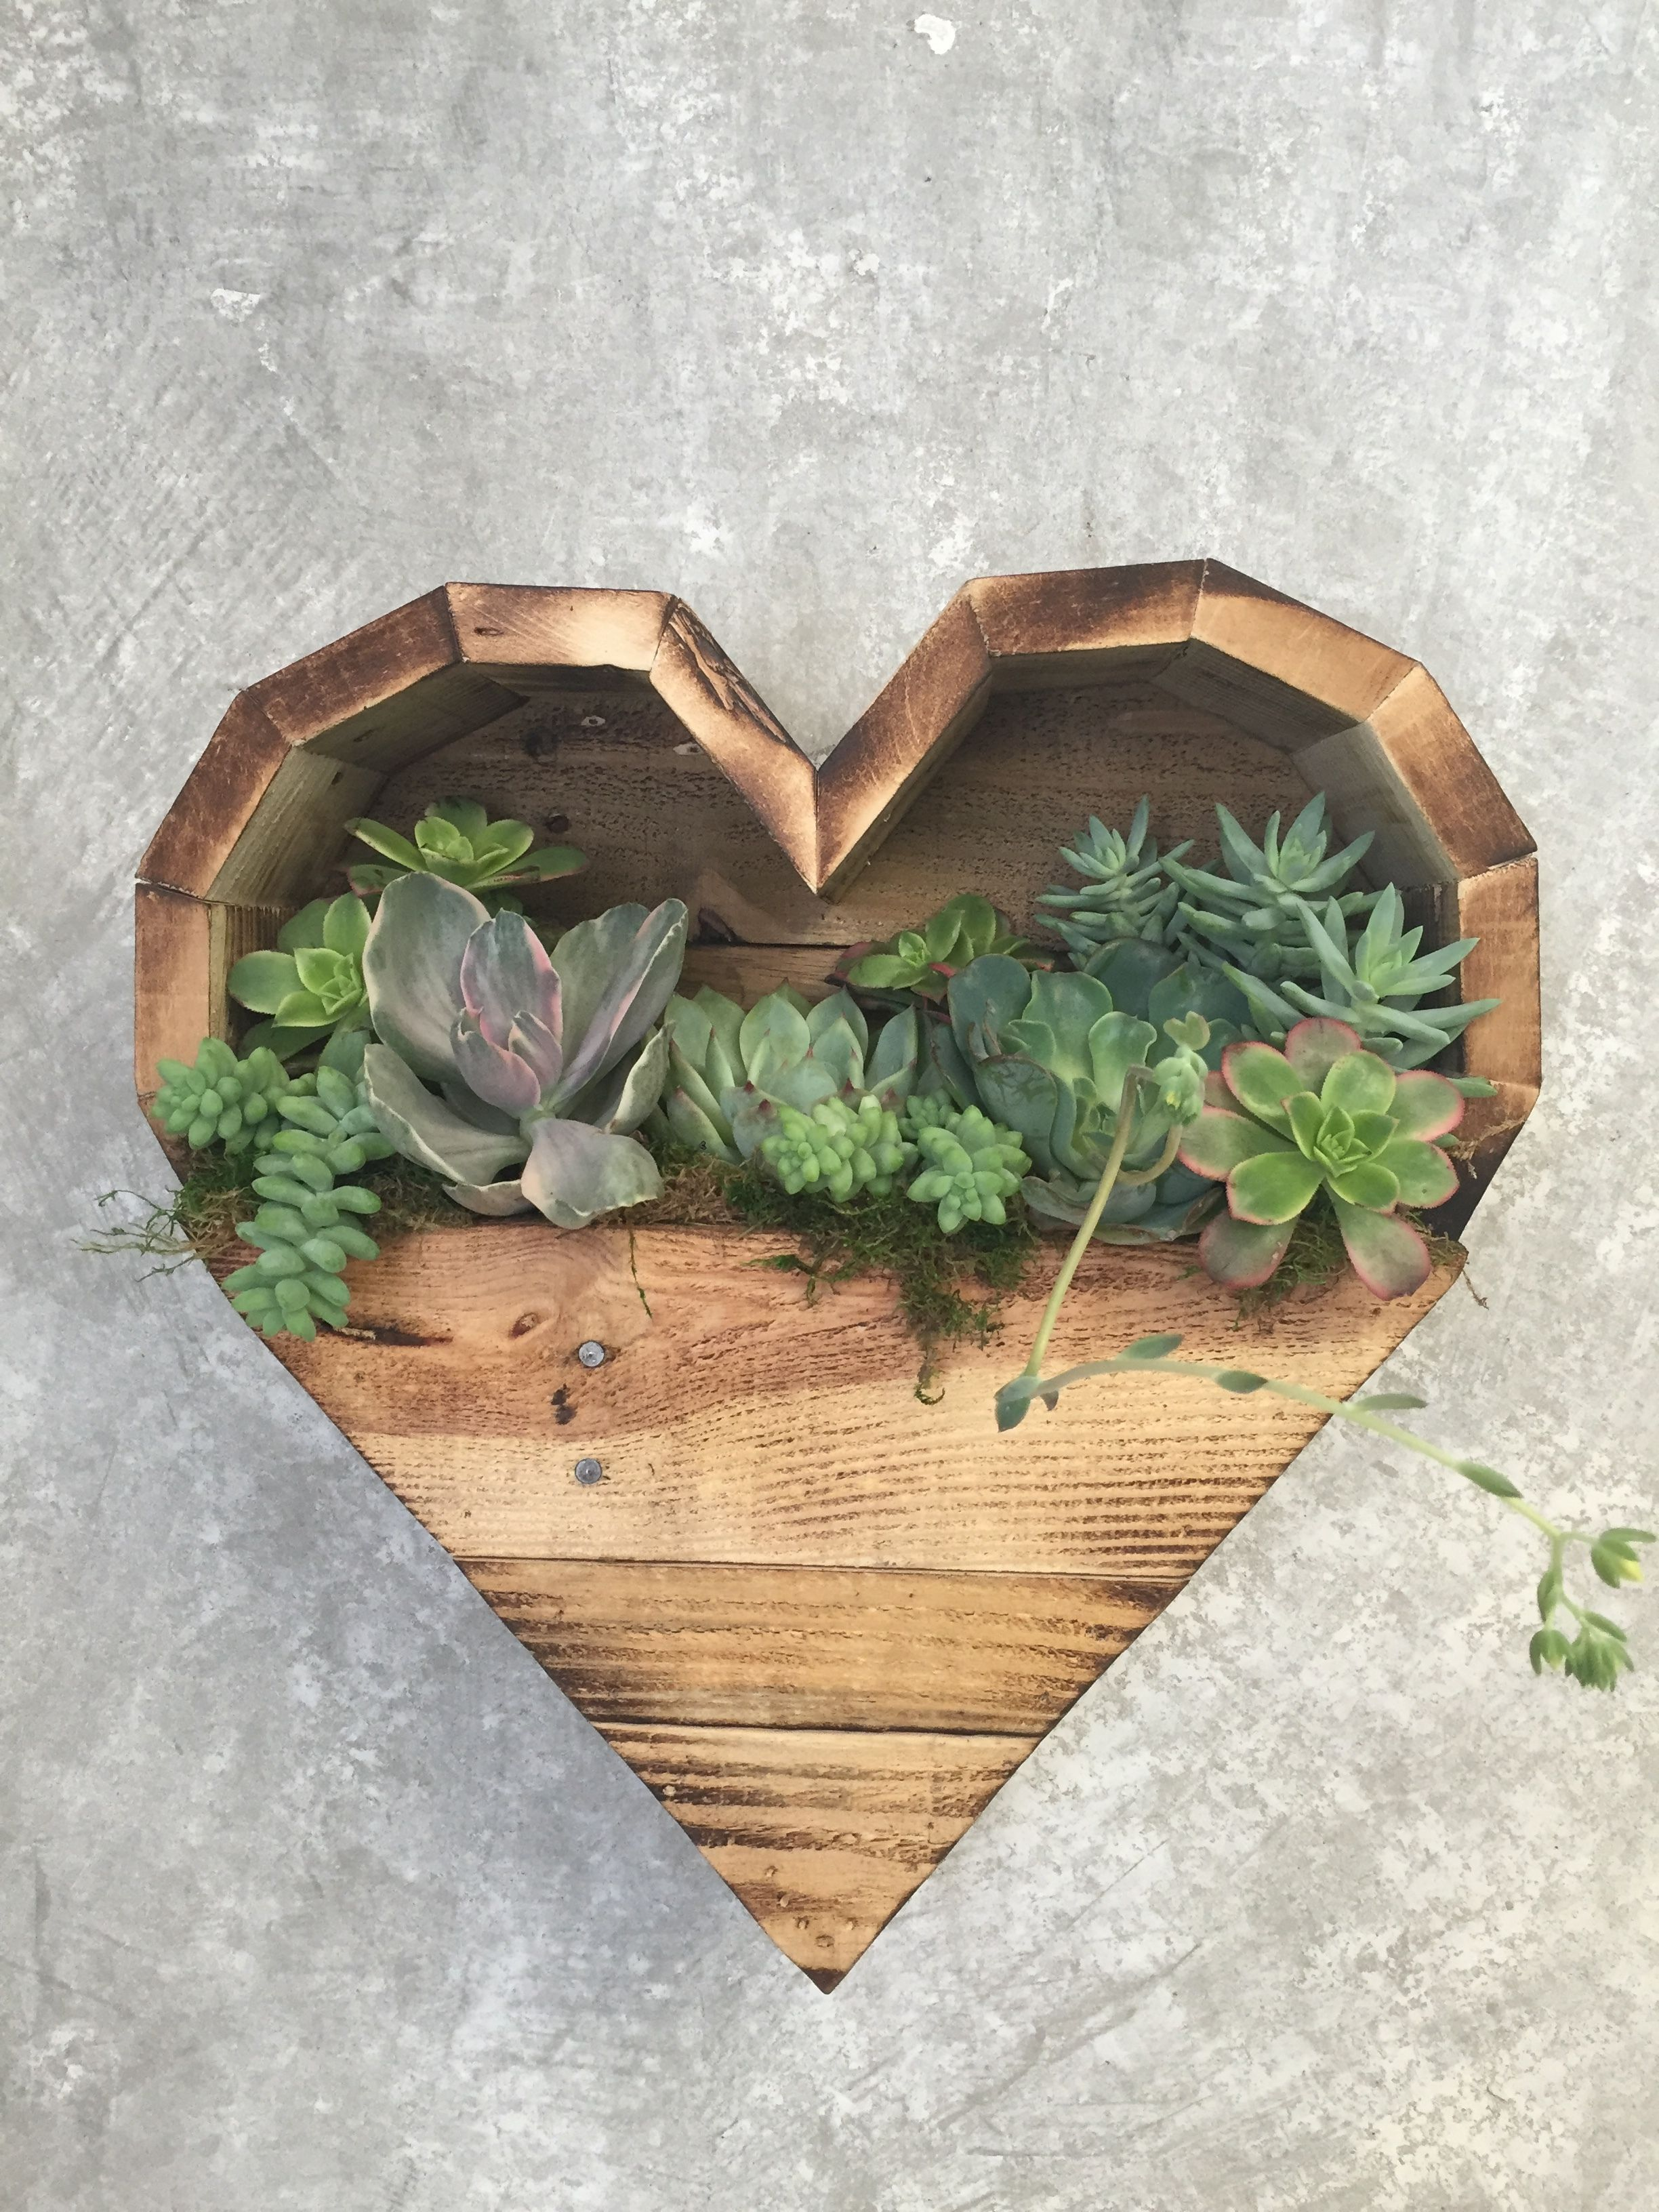 Heart Shaped Planter Box With Succulents Hunt Collective $95